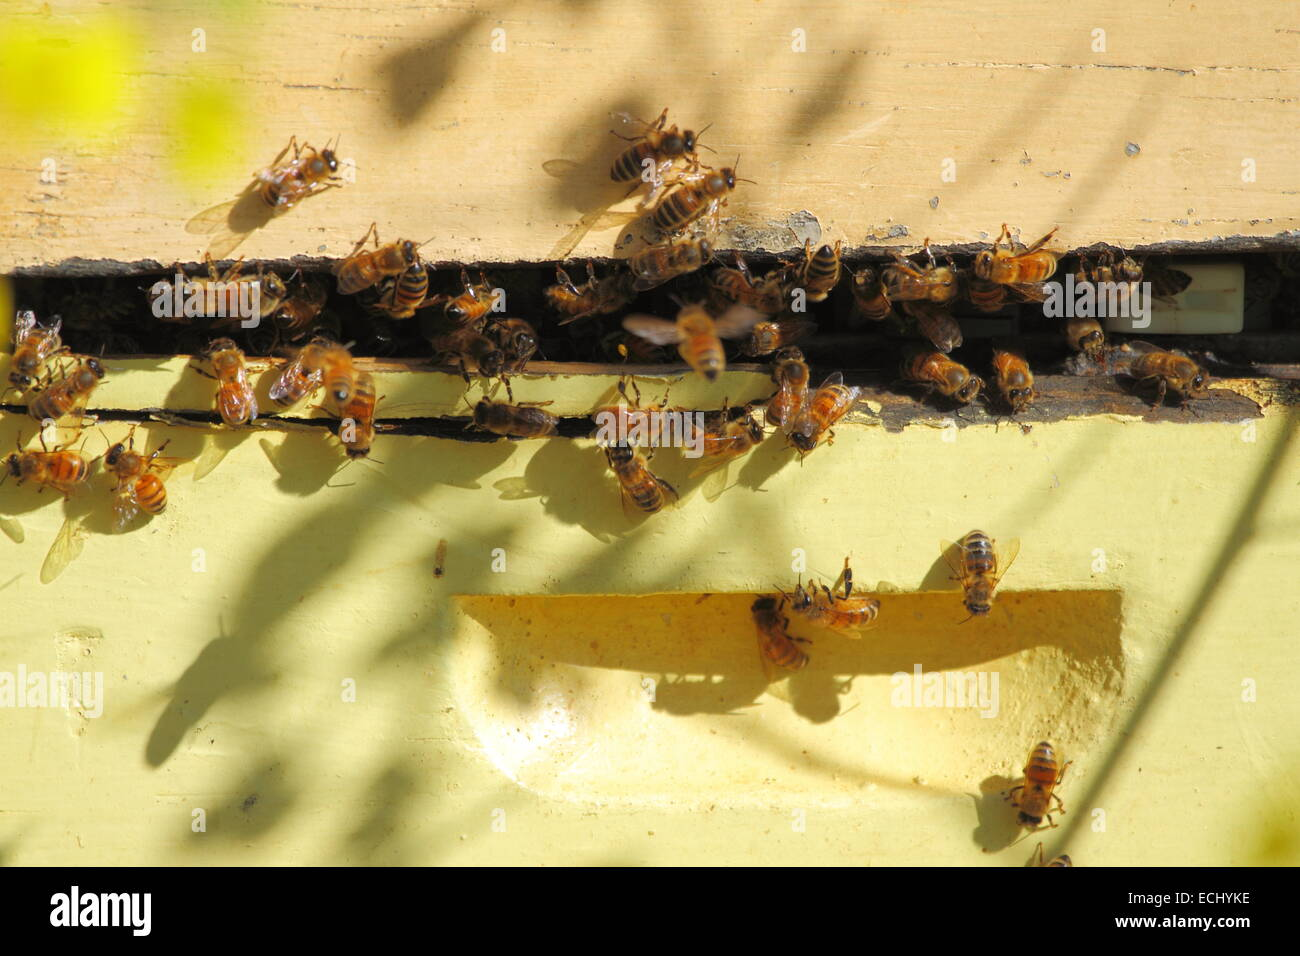 Bees congregating at a hive box among a field of canola near New Norcia, Western Australia. - Stock Image